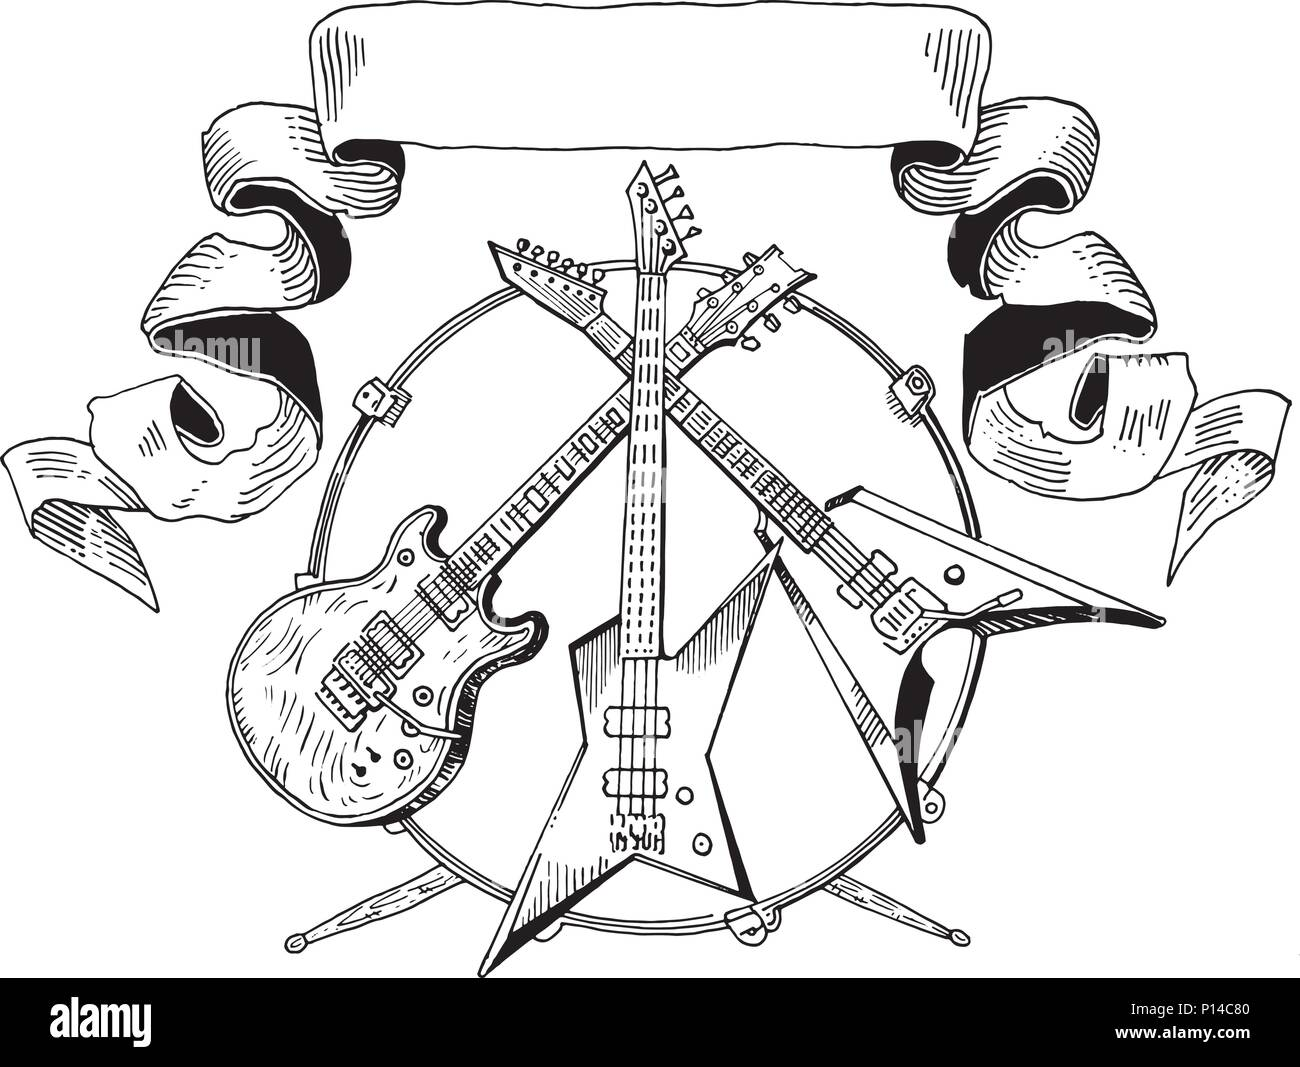 heavy metal coat of arms electric guitar bass drums line art